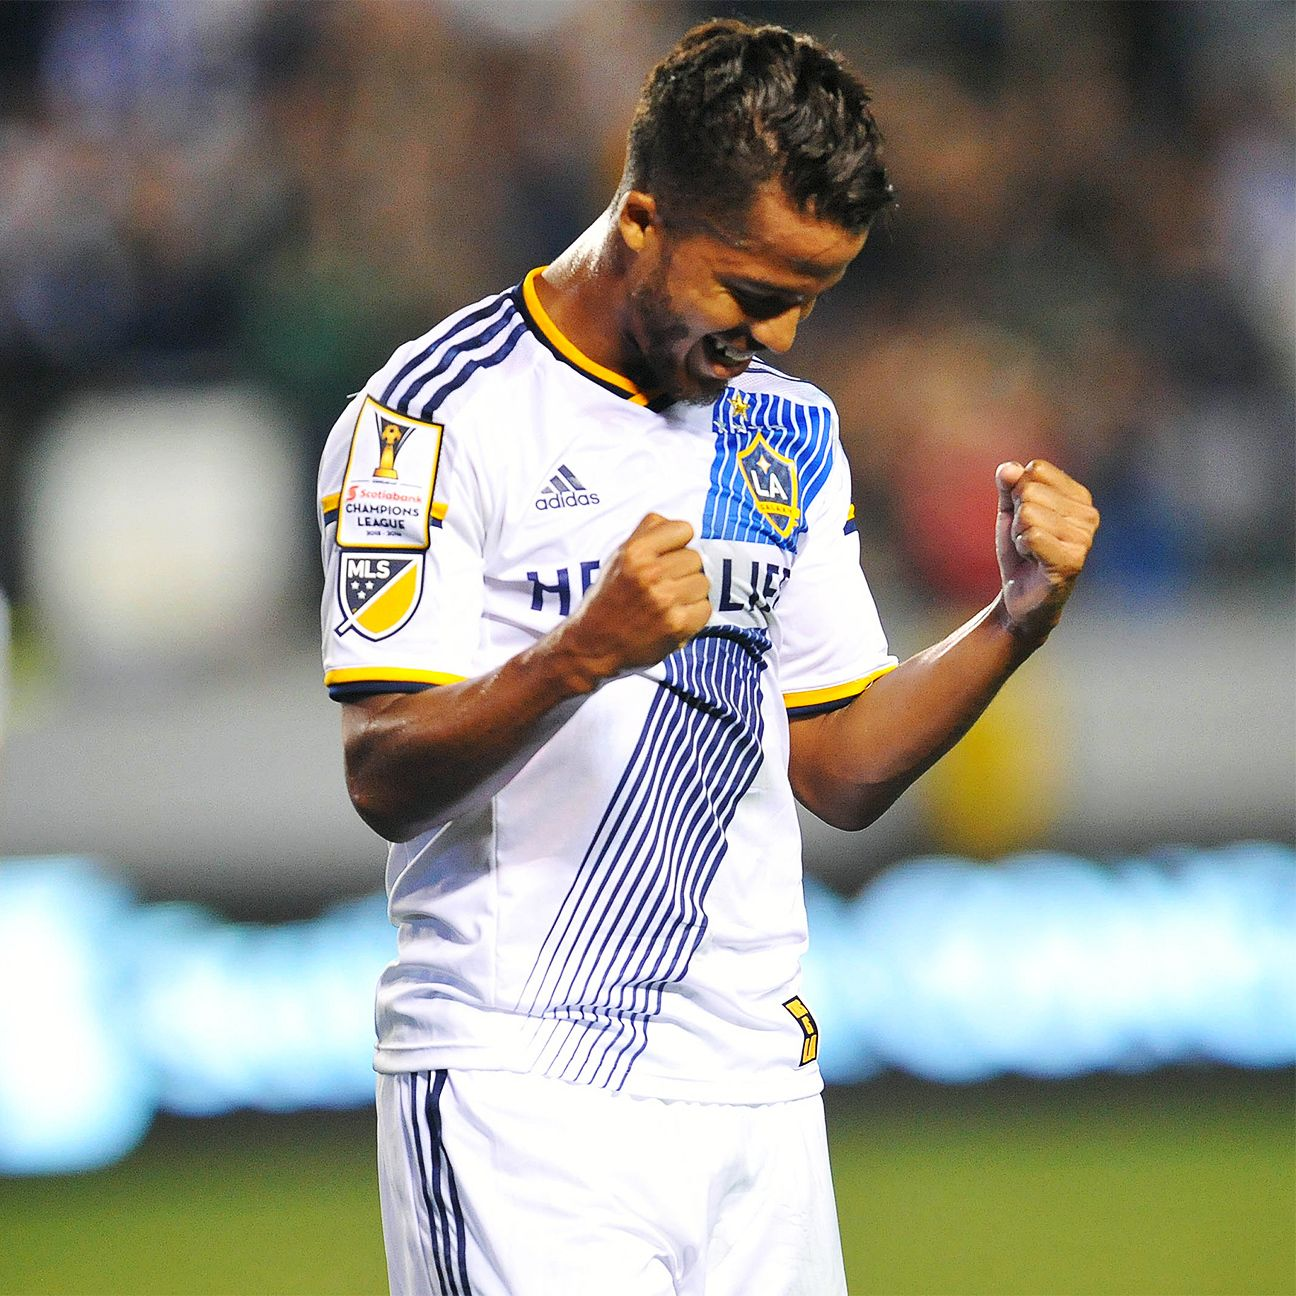 The L.A. Galaxy are undefeated since Giovani dos Santos' arrival to the club.